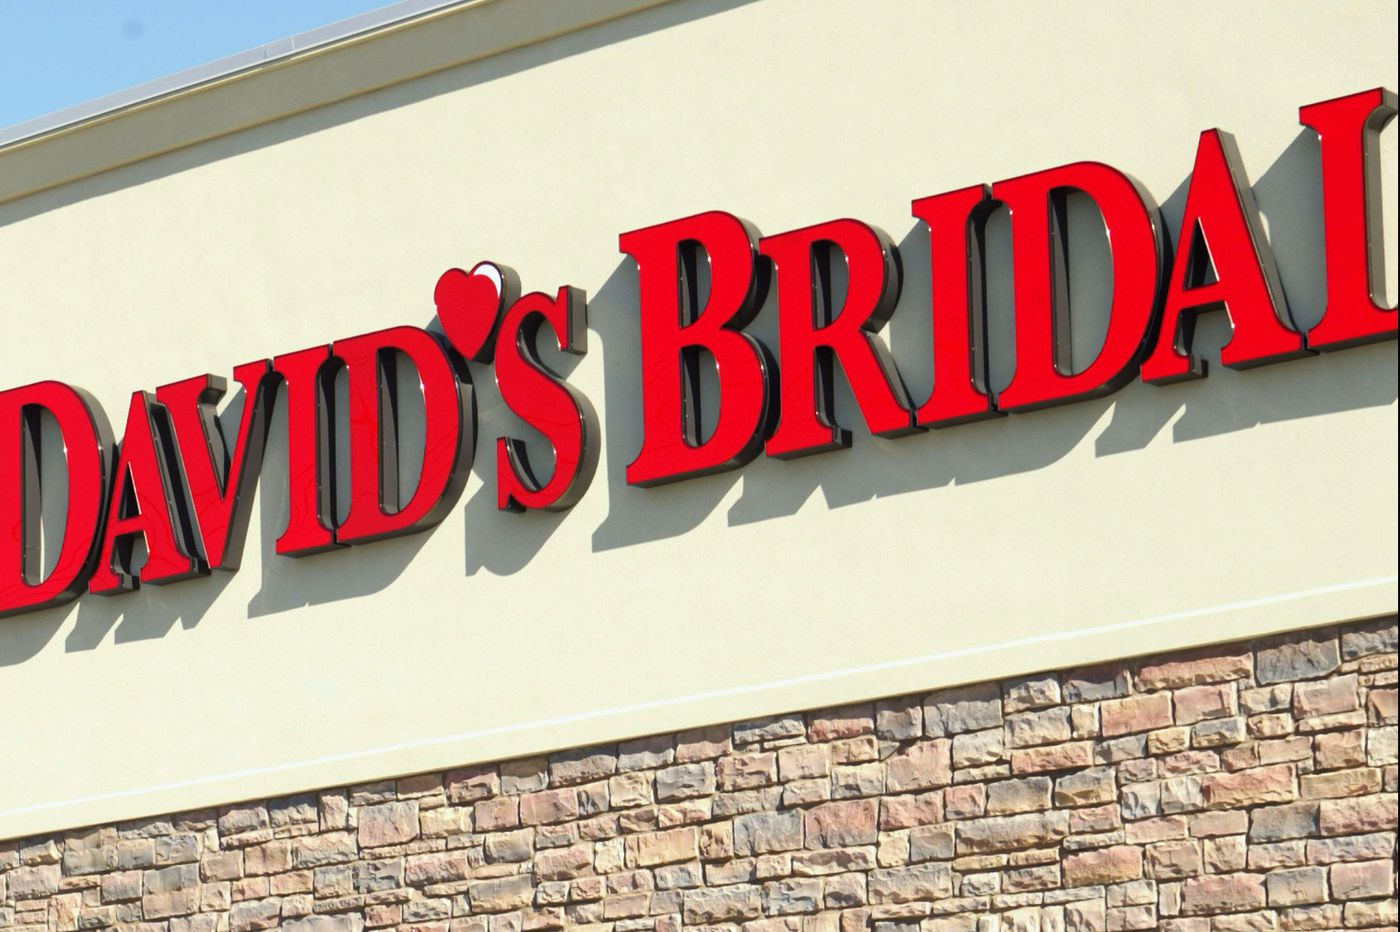 David's Bridal is near a deal for Chapter 11 restructuring